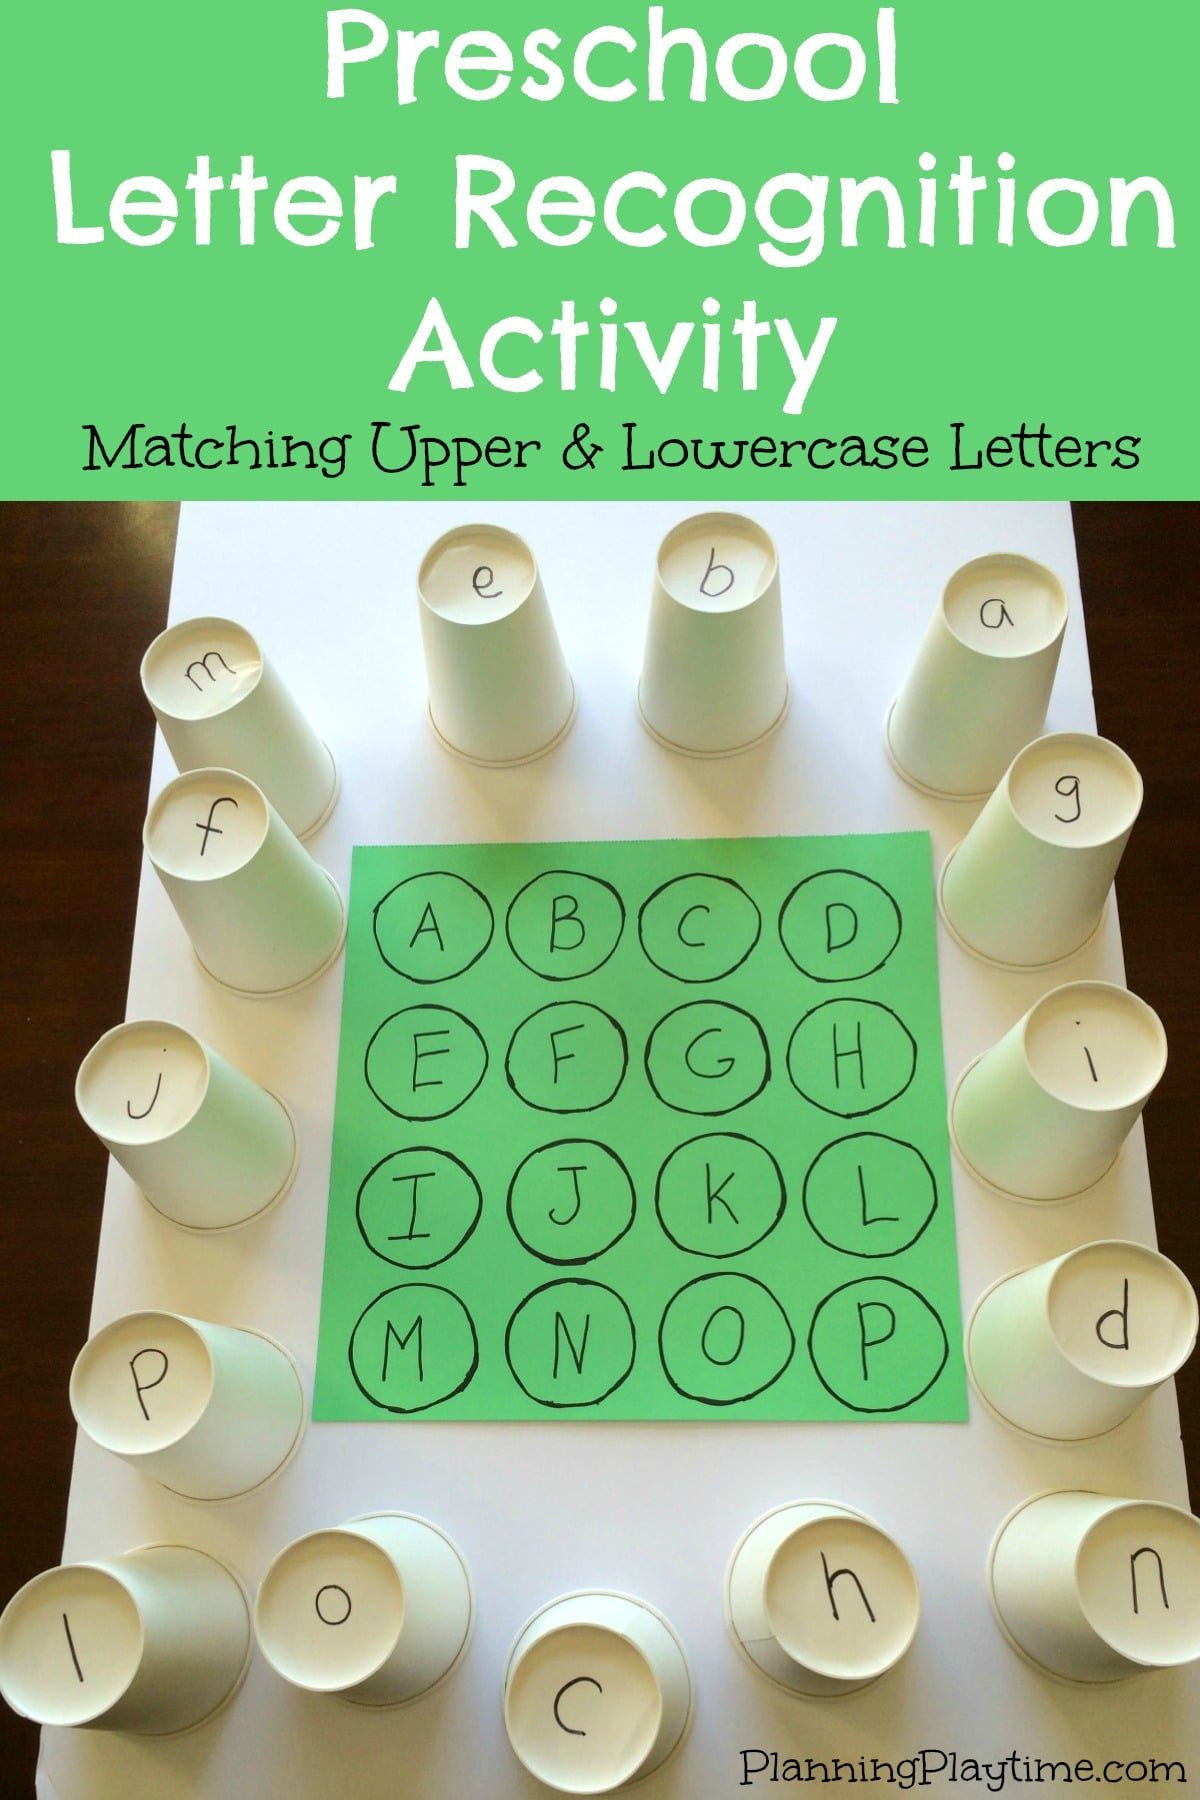 letter recognition kindergarten preschool letter recognition activities planning playtime 15236 | Preschool Letter Recognition Activities Matching Upper and Lowercase Letters using paper cups and lots of other fun activities.